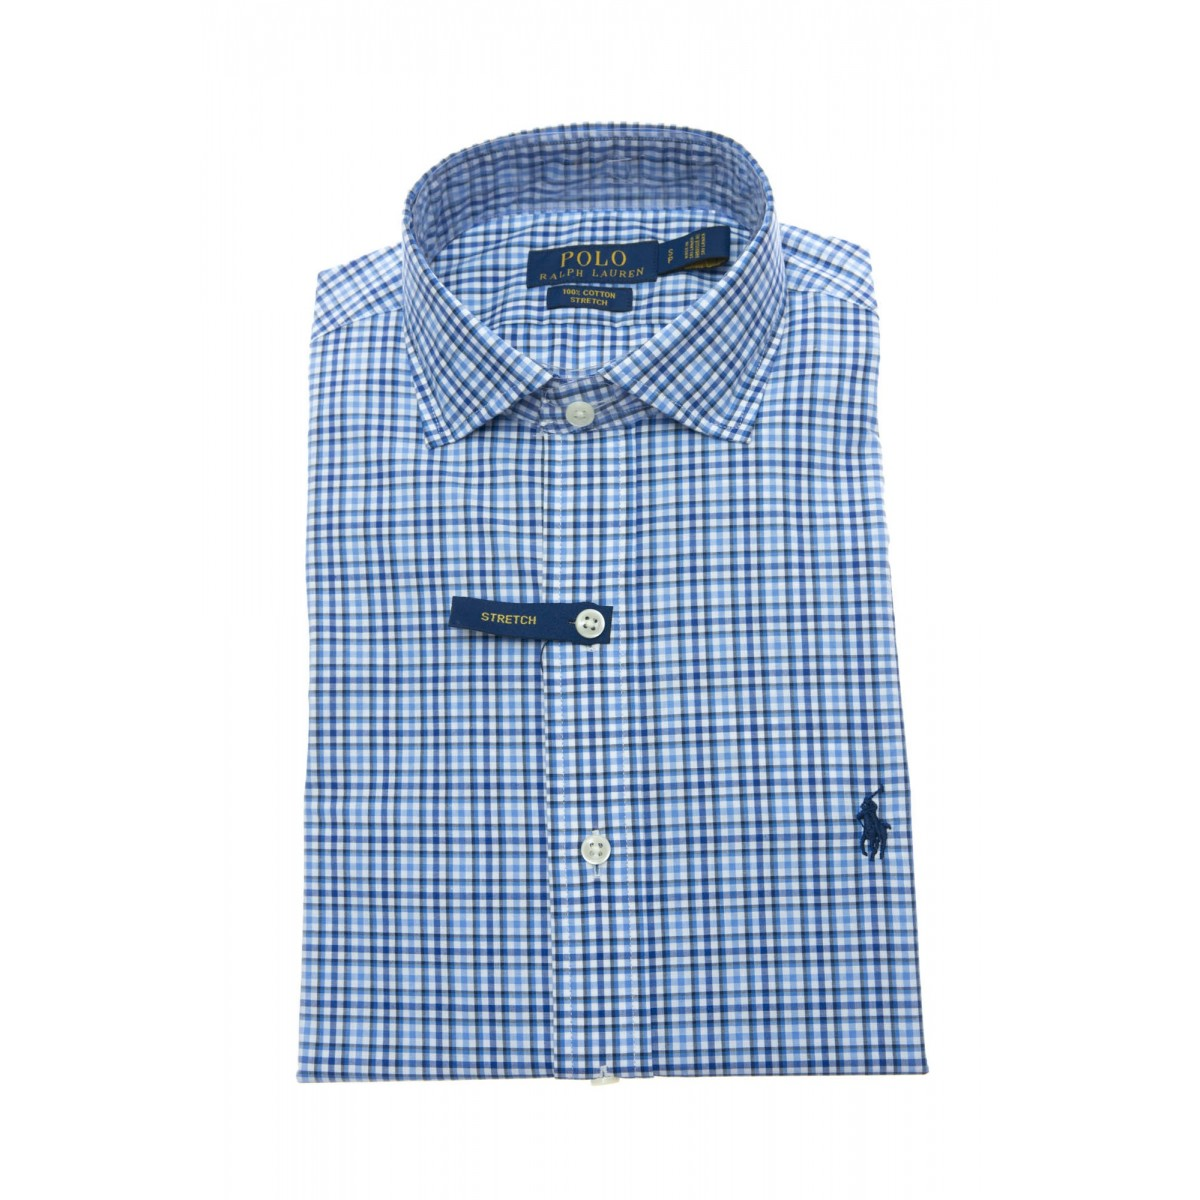 Camicia Uomo - 716297 camicia custom fit quadretto